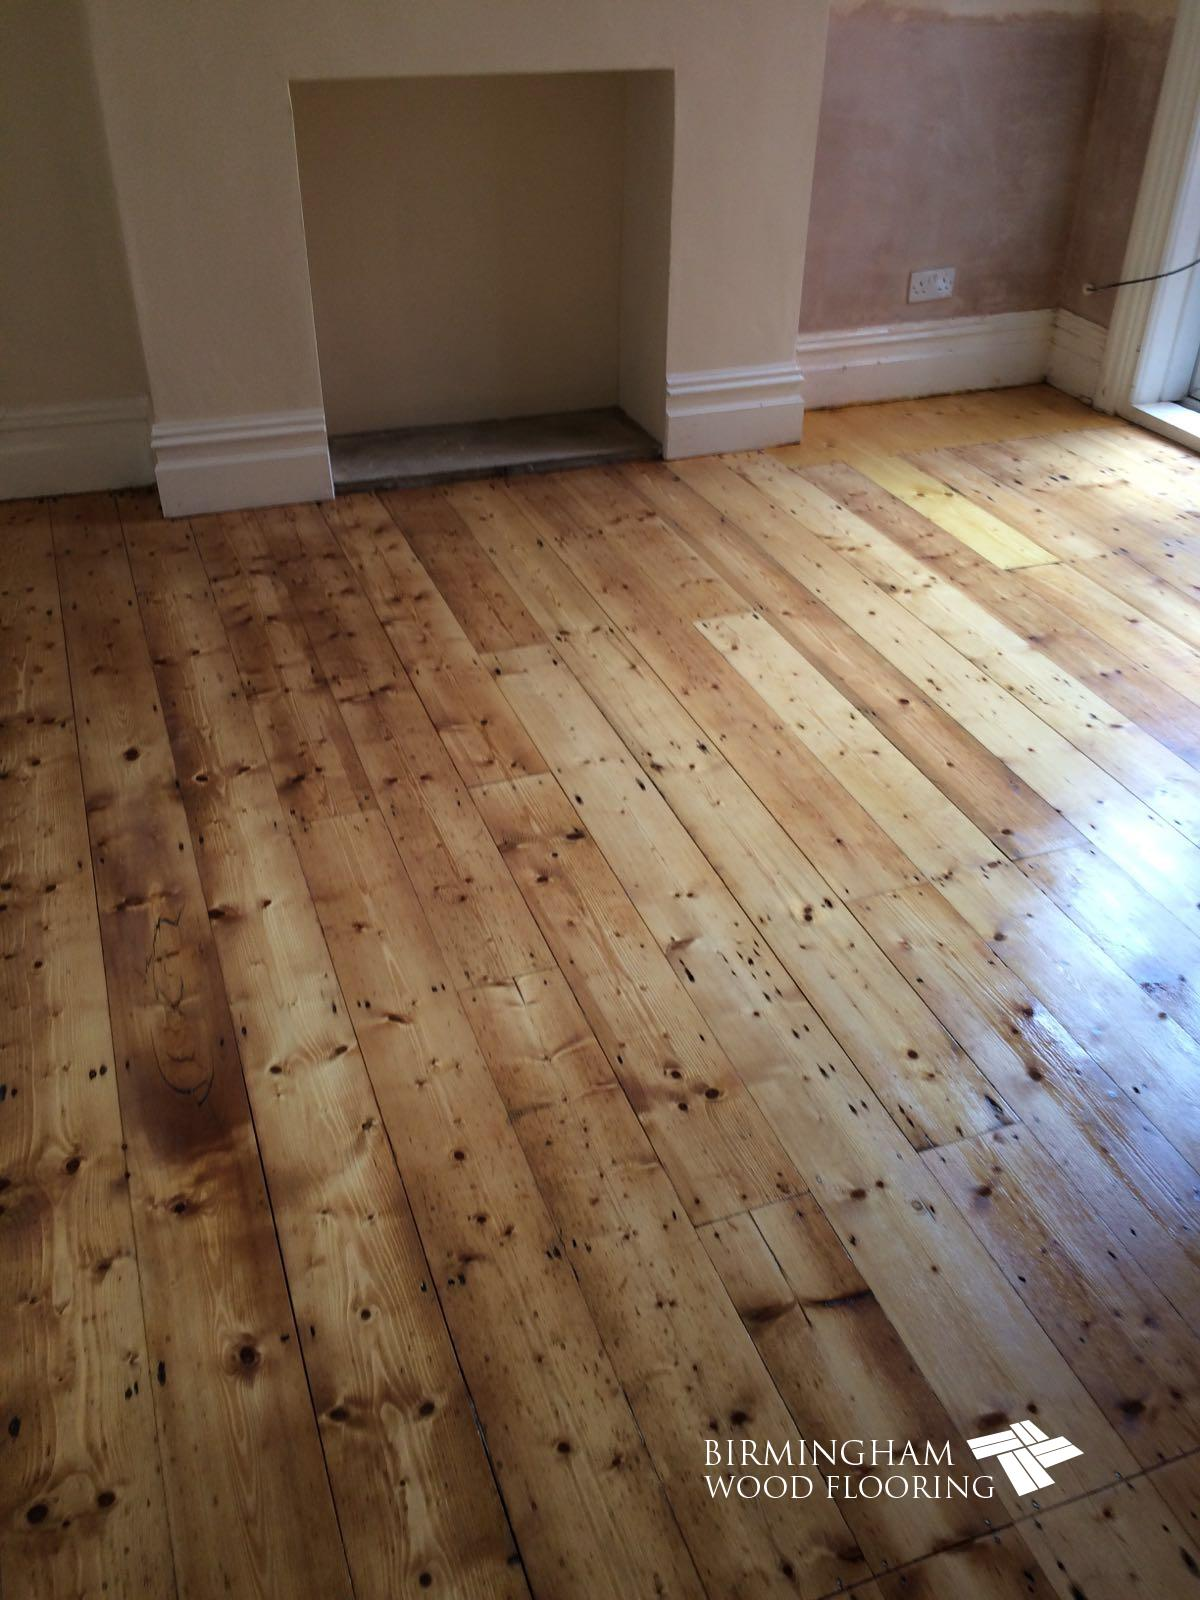 Wood-floor-sanded-and-lacquered-1